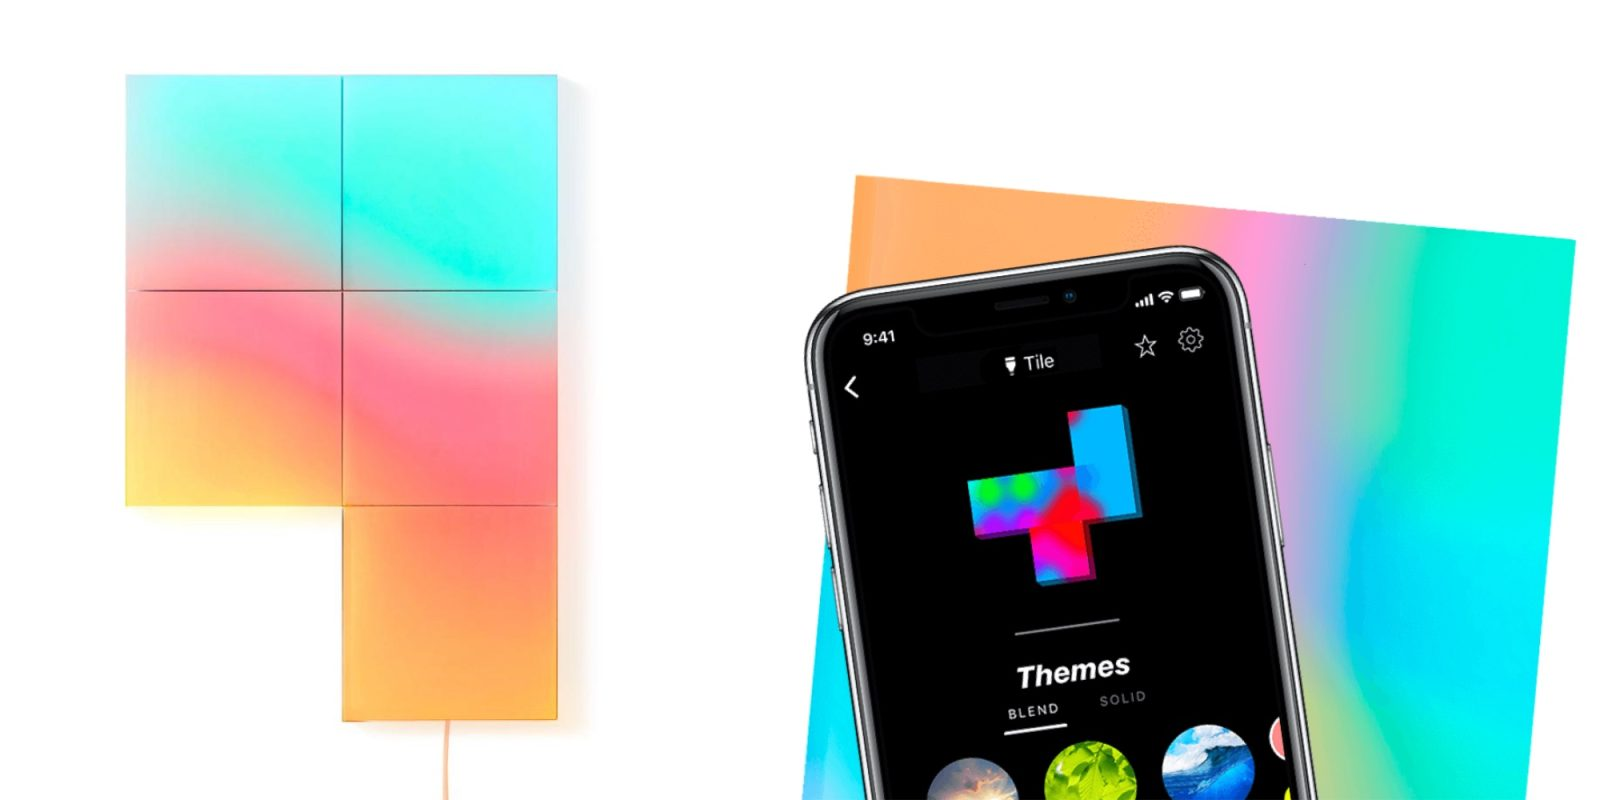 Ambient lighting arrives for $134 50 with LIFX's Tile HomeKit